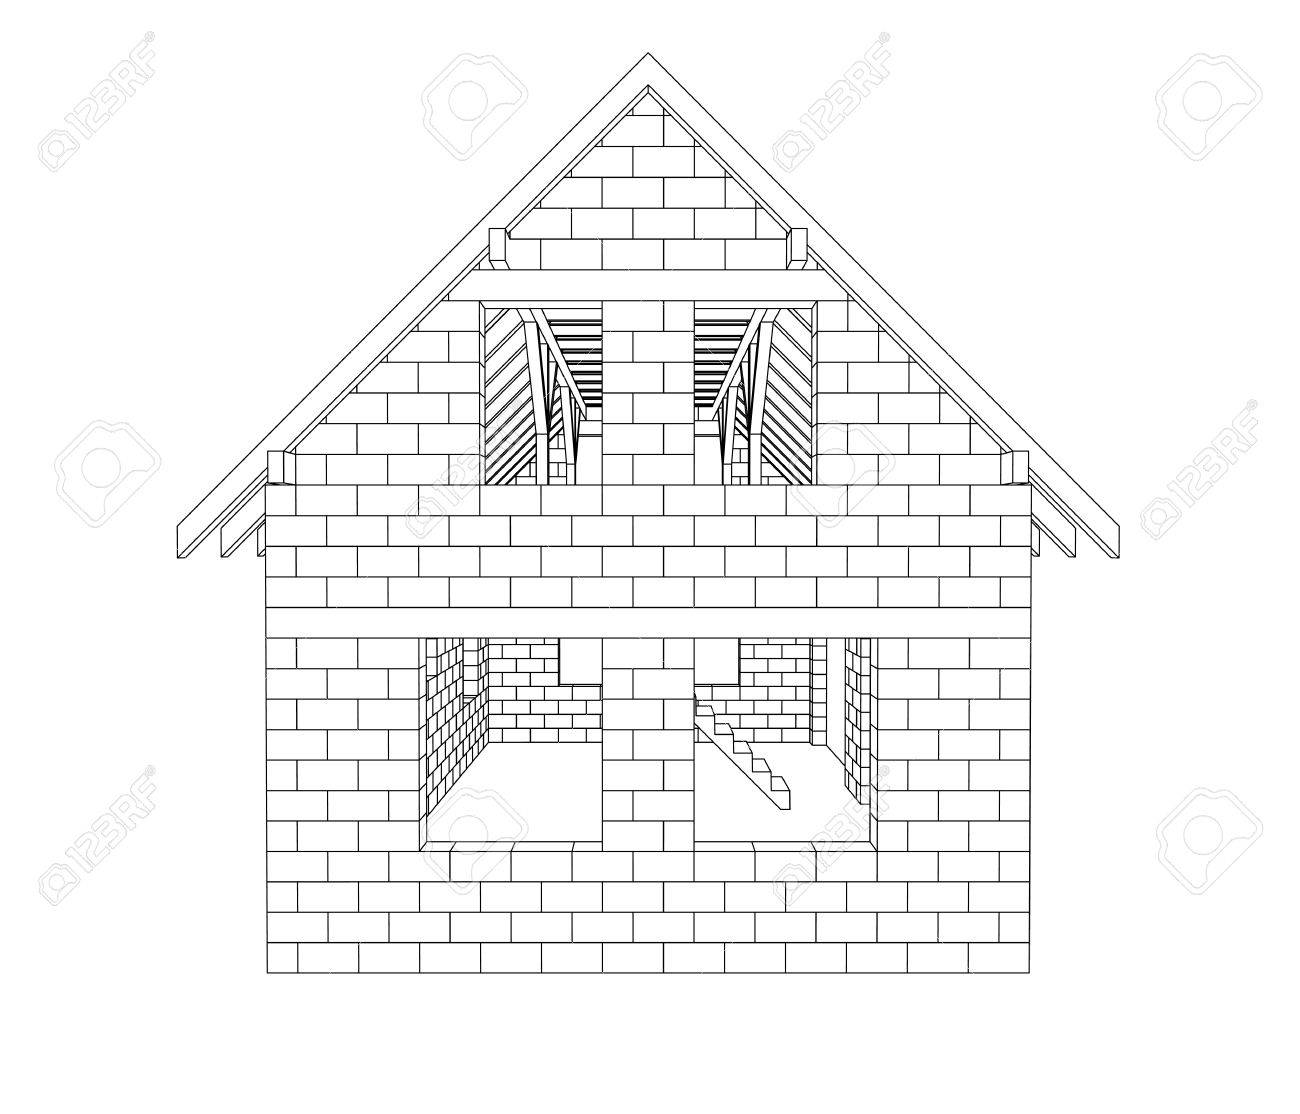 Gable house construction line drawing vector illustration royalty gable house construction line drawing vector illustration stock vector 22372282 ccuart Gallery